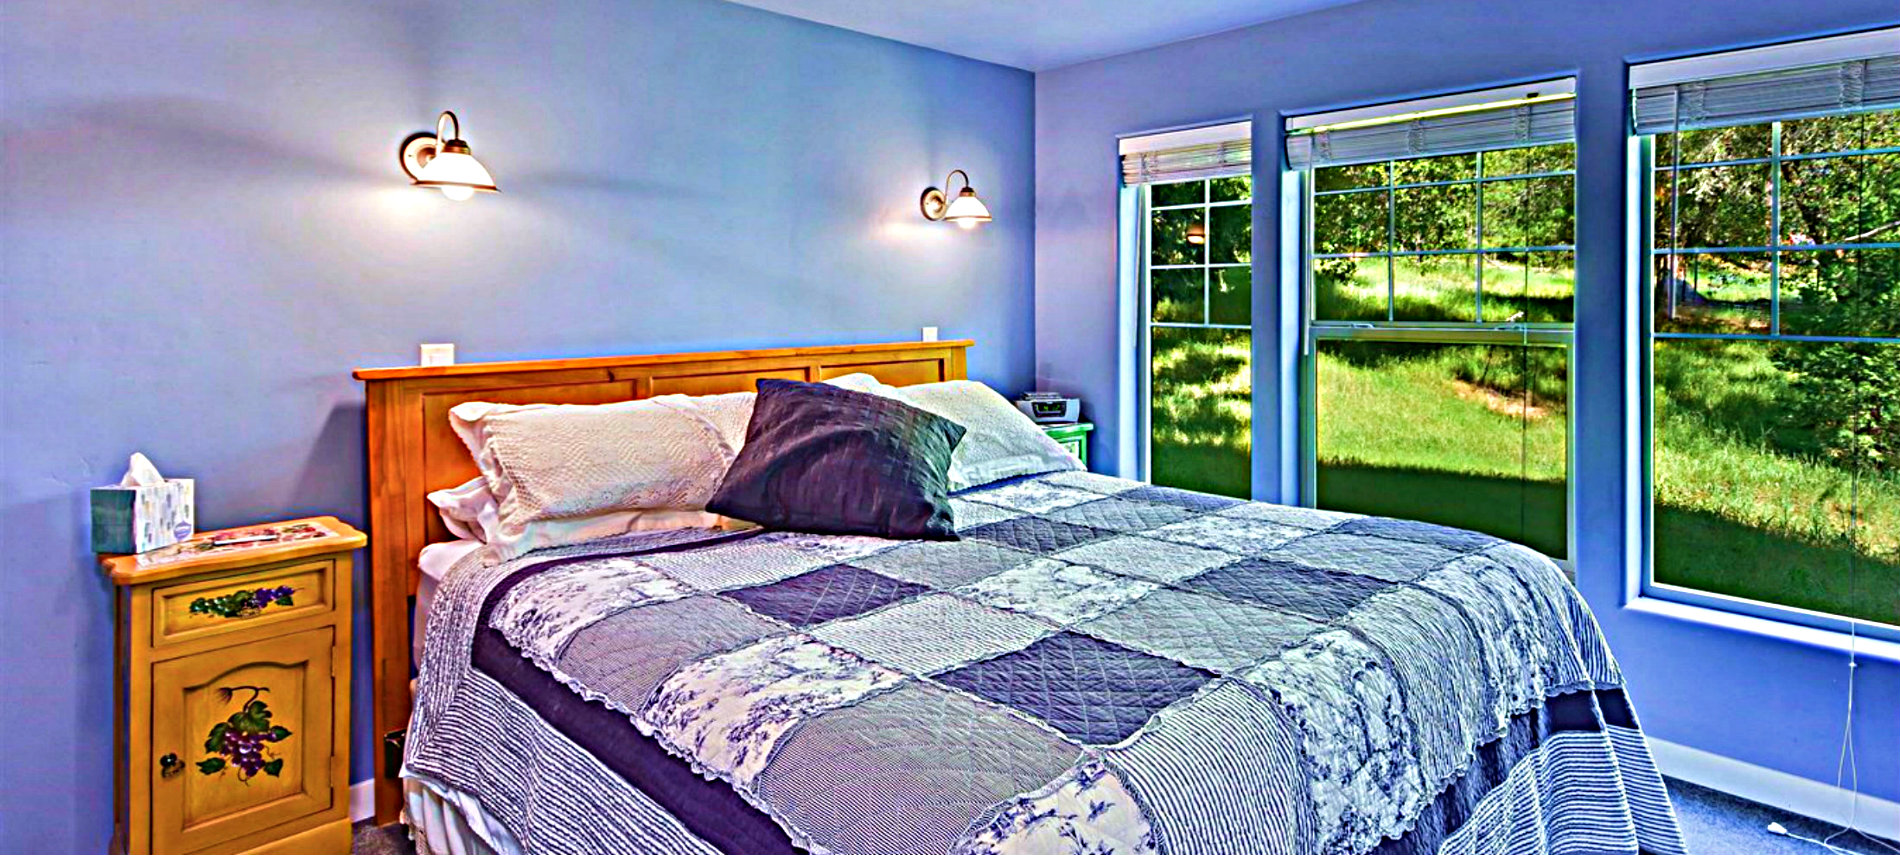 Bed with white & pink spread with several shaped pillows and tables on each side and a blue wall